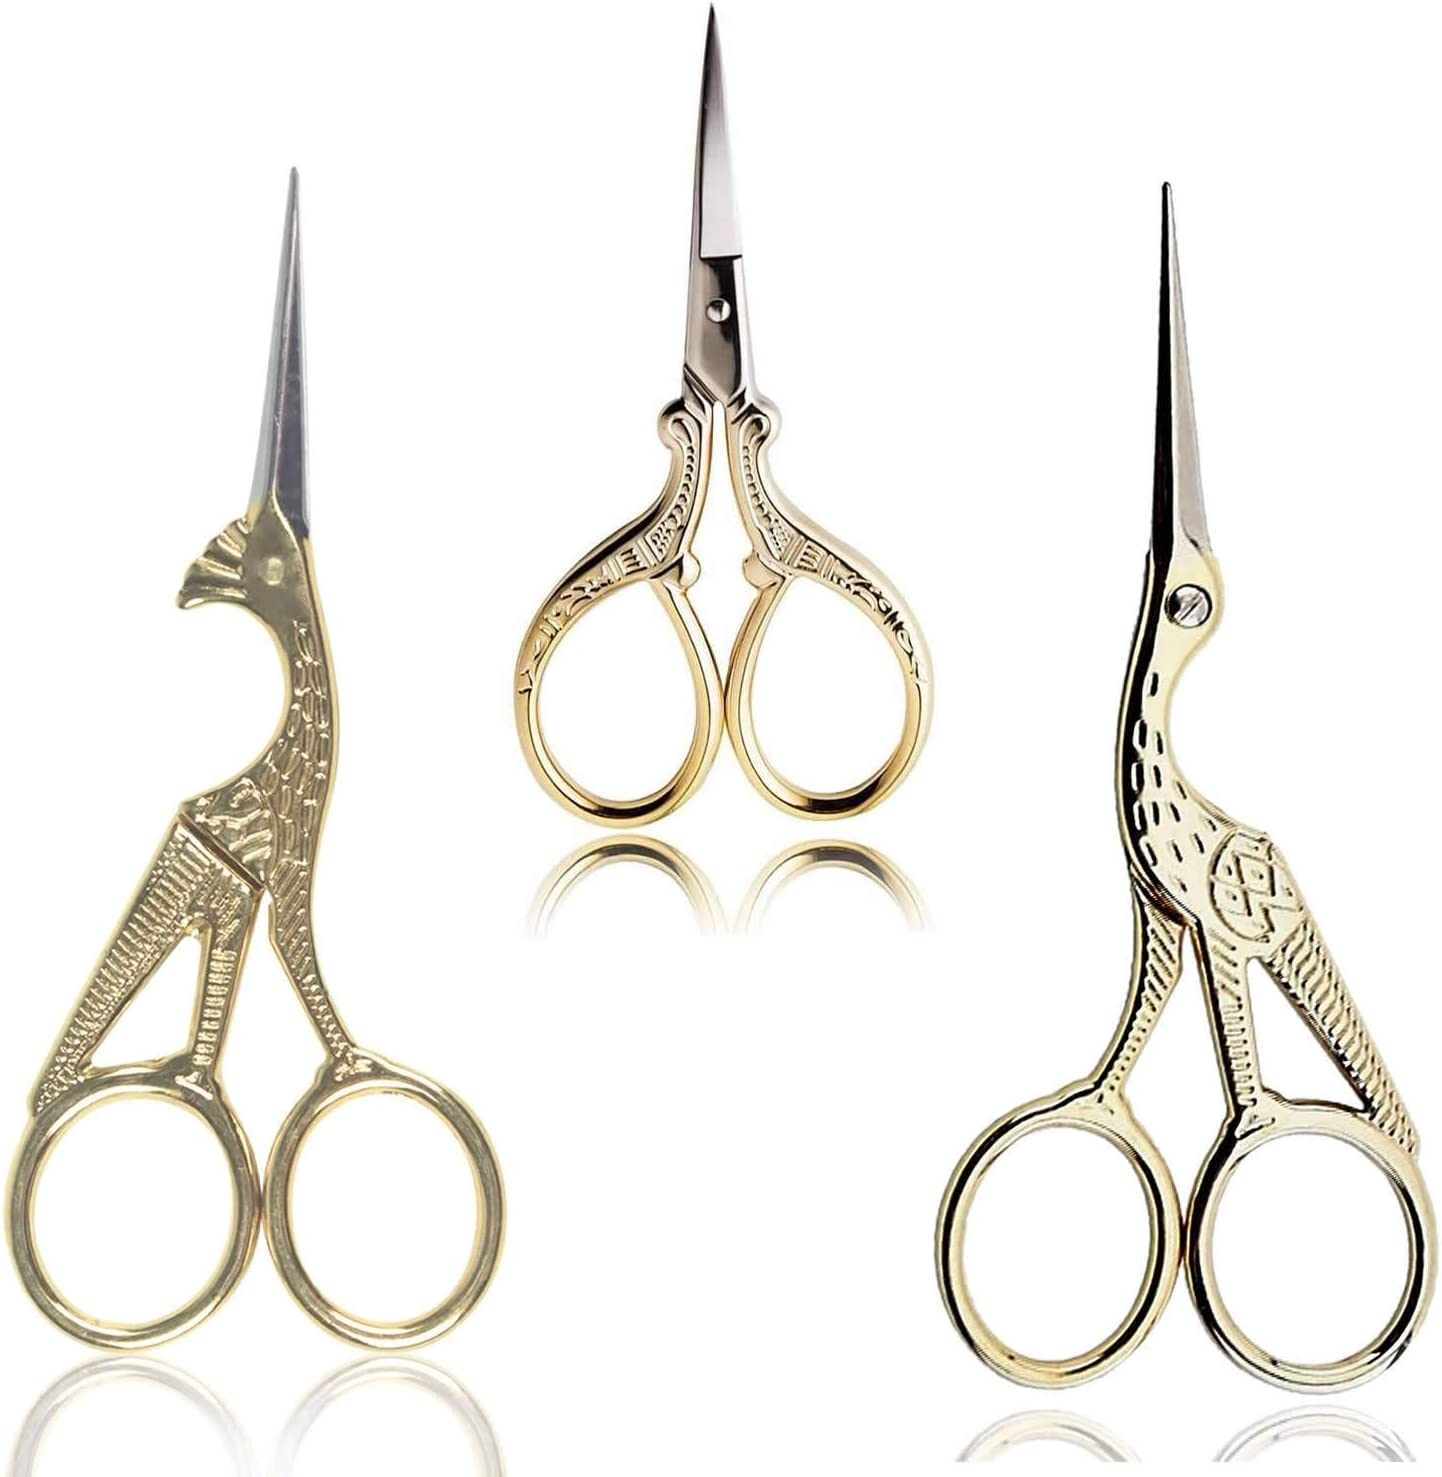 BIHRTC Scissors 2Pcs 4.5 Inch Bird Sewing Scissors and 1PC 3.6 Inch Embroidery Scissors Stainless Steel Sharp Tip Stork Scissors Shears for Craft Sewing Needlework Art Work Office Everyday Use Gold